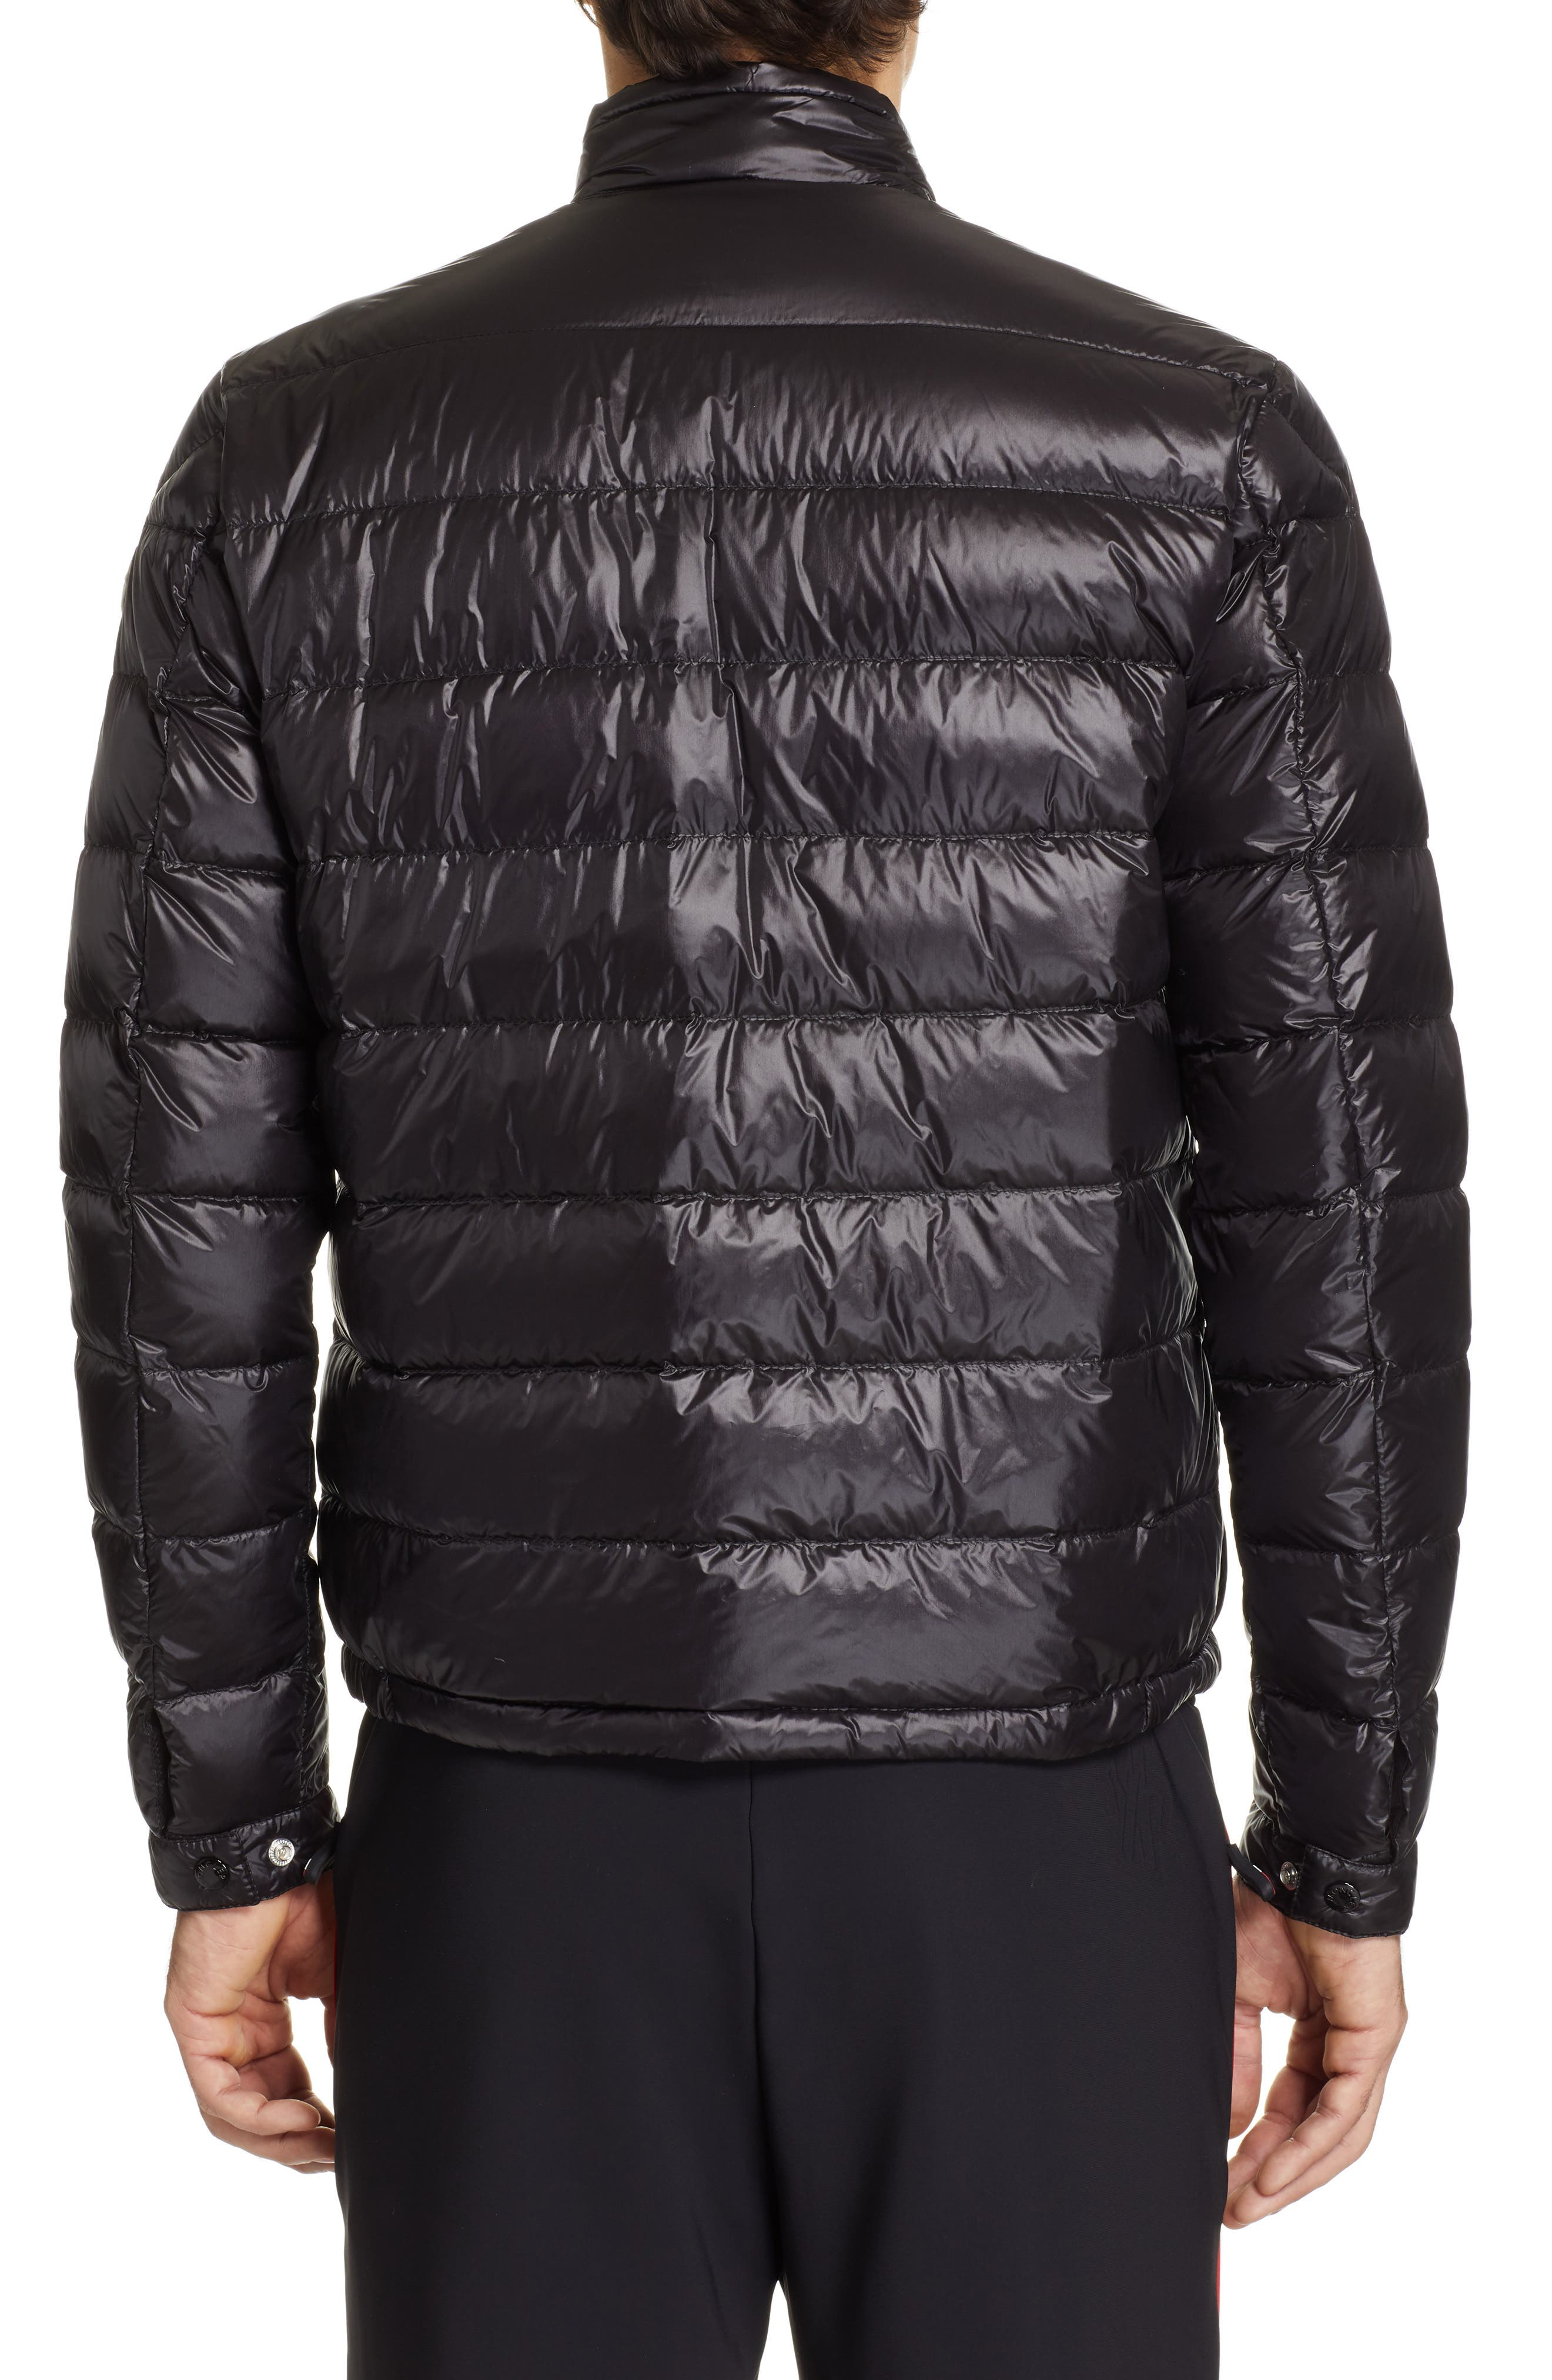 MONCLER, Acorus Down Jacket, Alternate thumbnail 2, color, BLACK